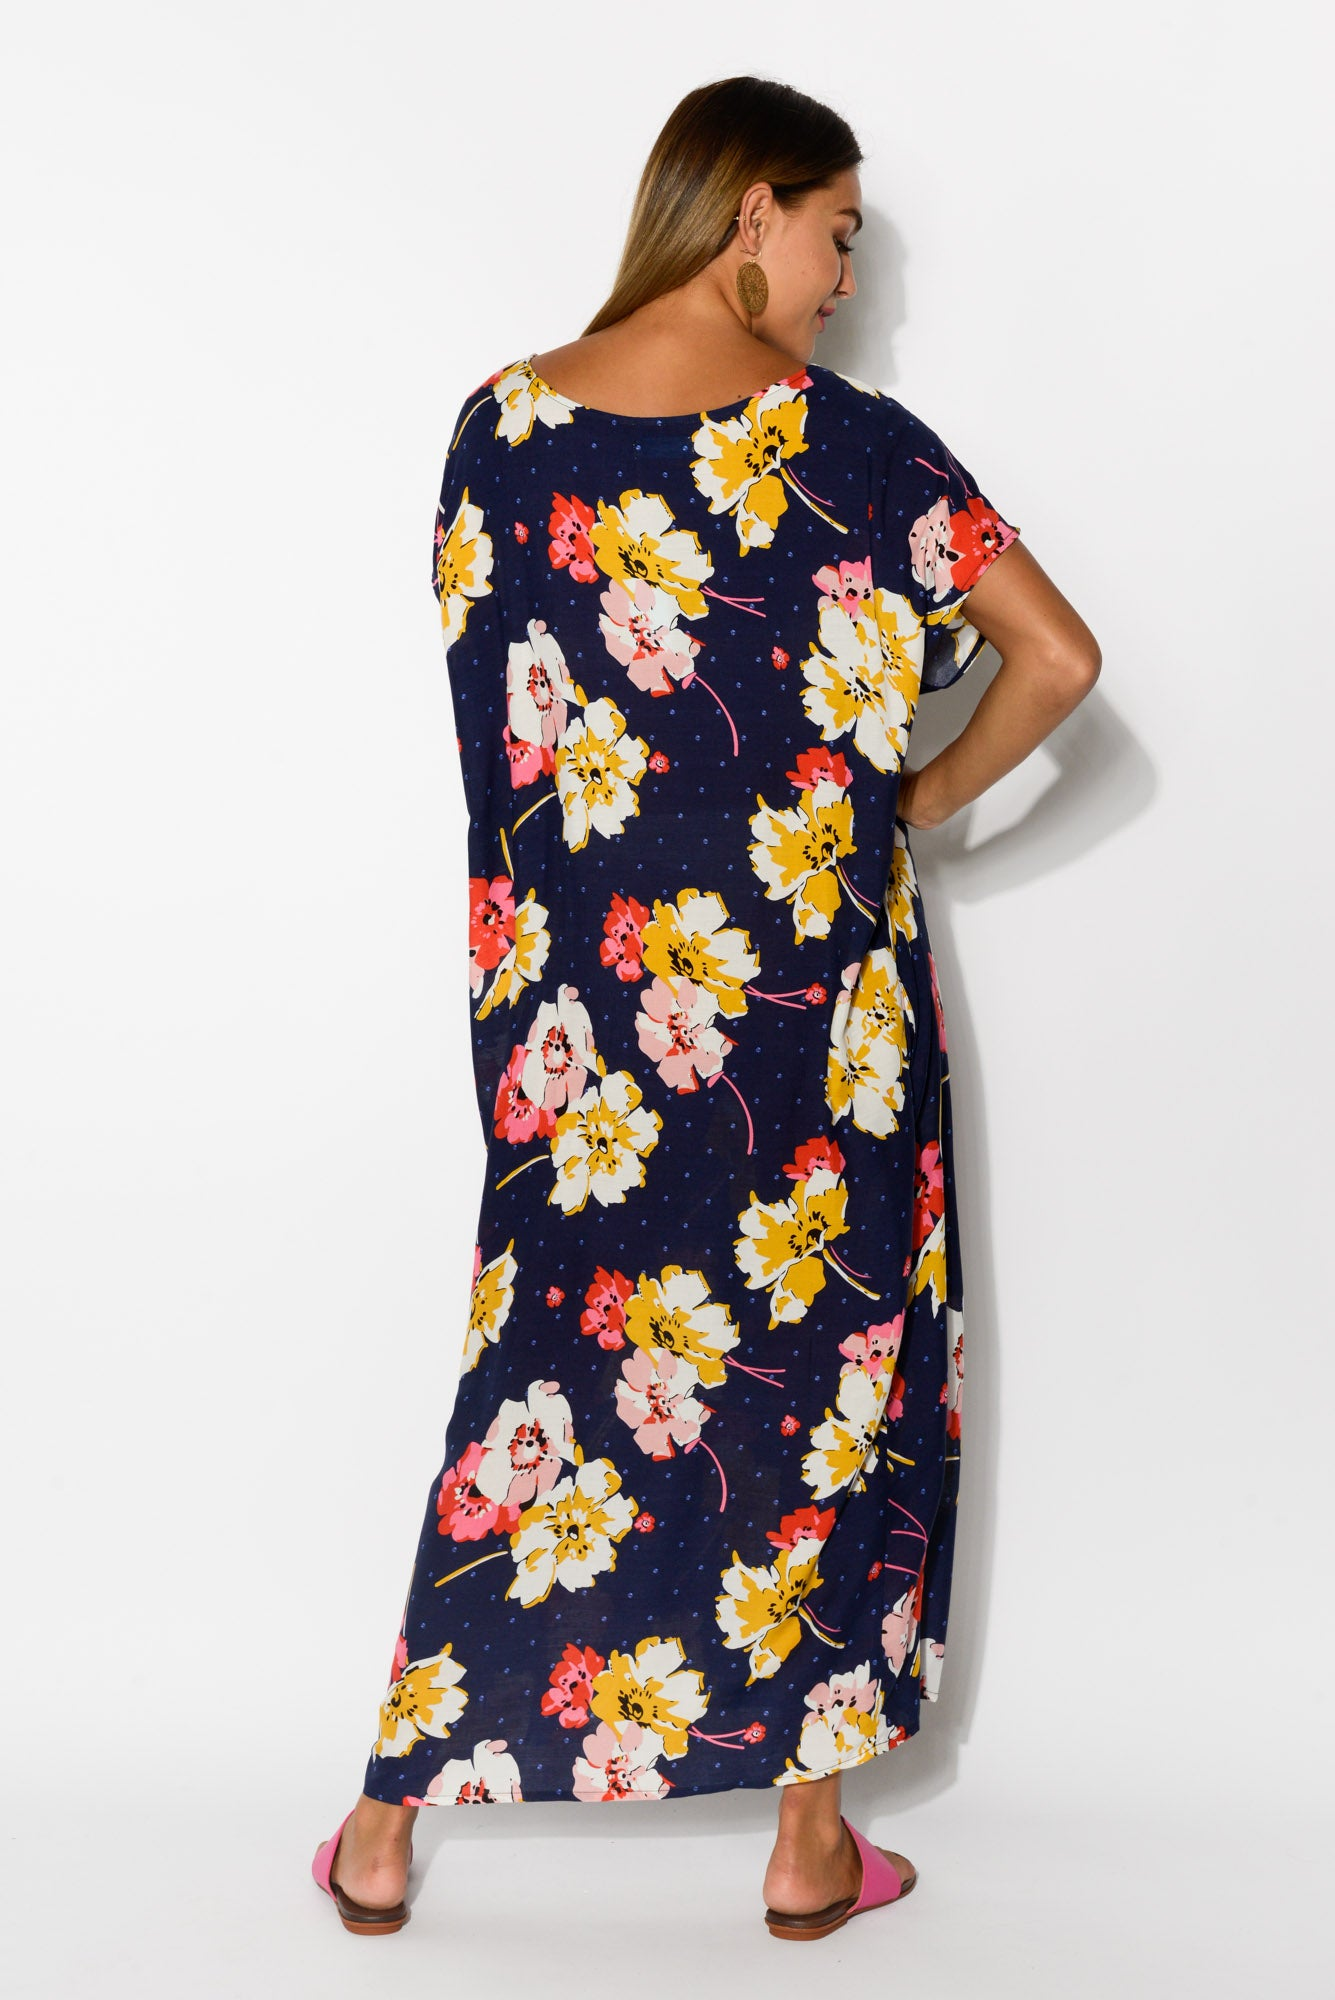 Claudia Navy Gardens Maxi Dress - Blue Bungalow